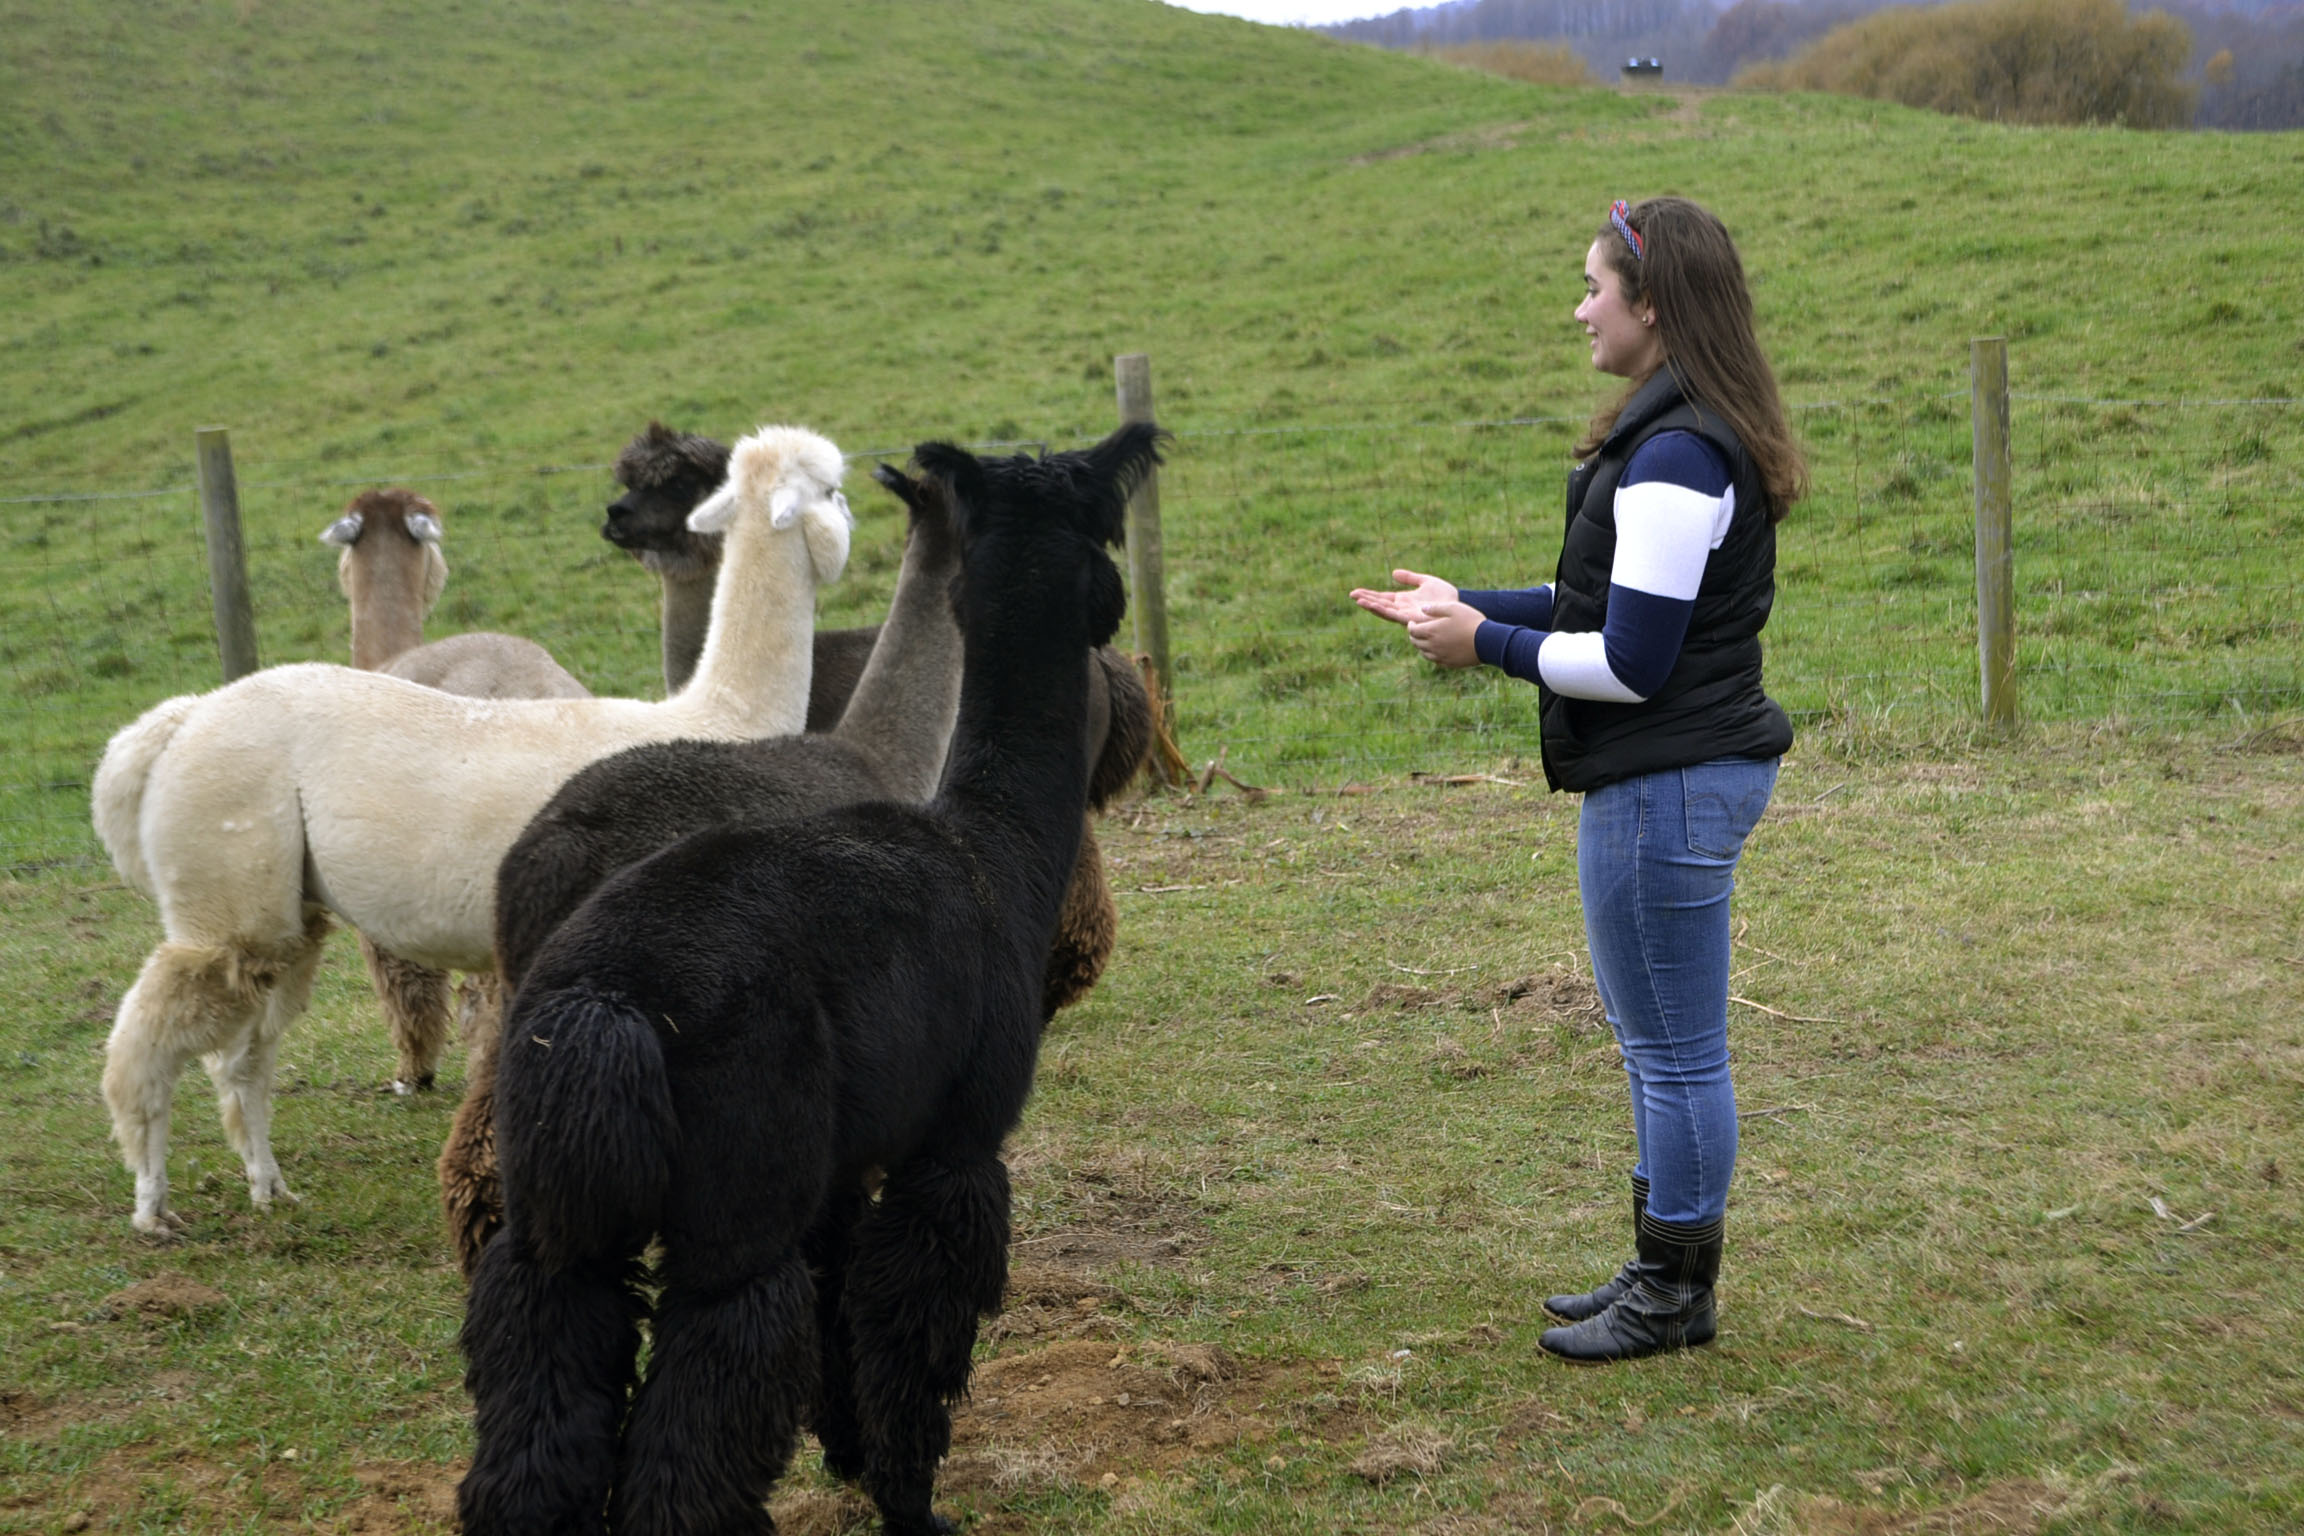 The alpacas learn something too